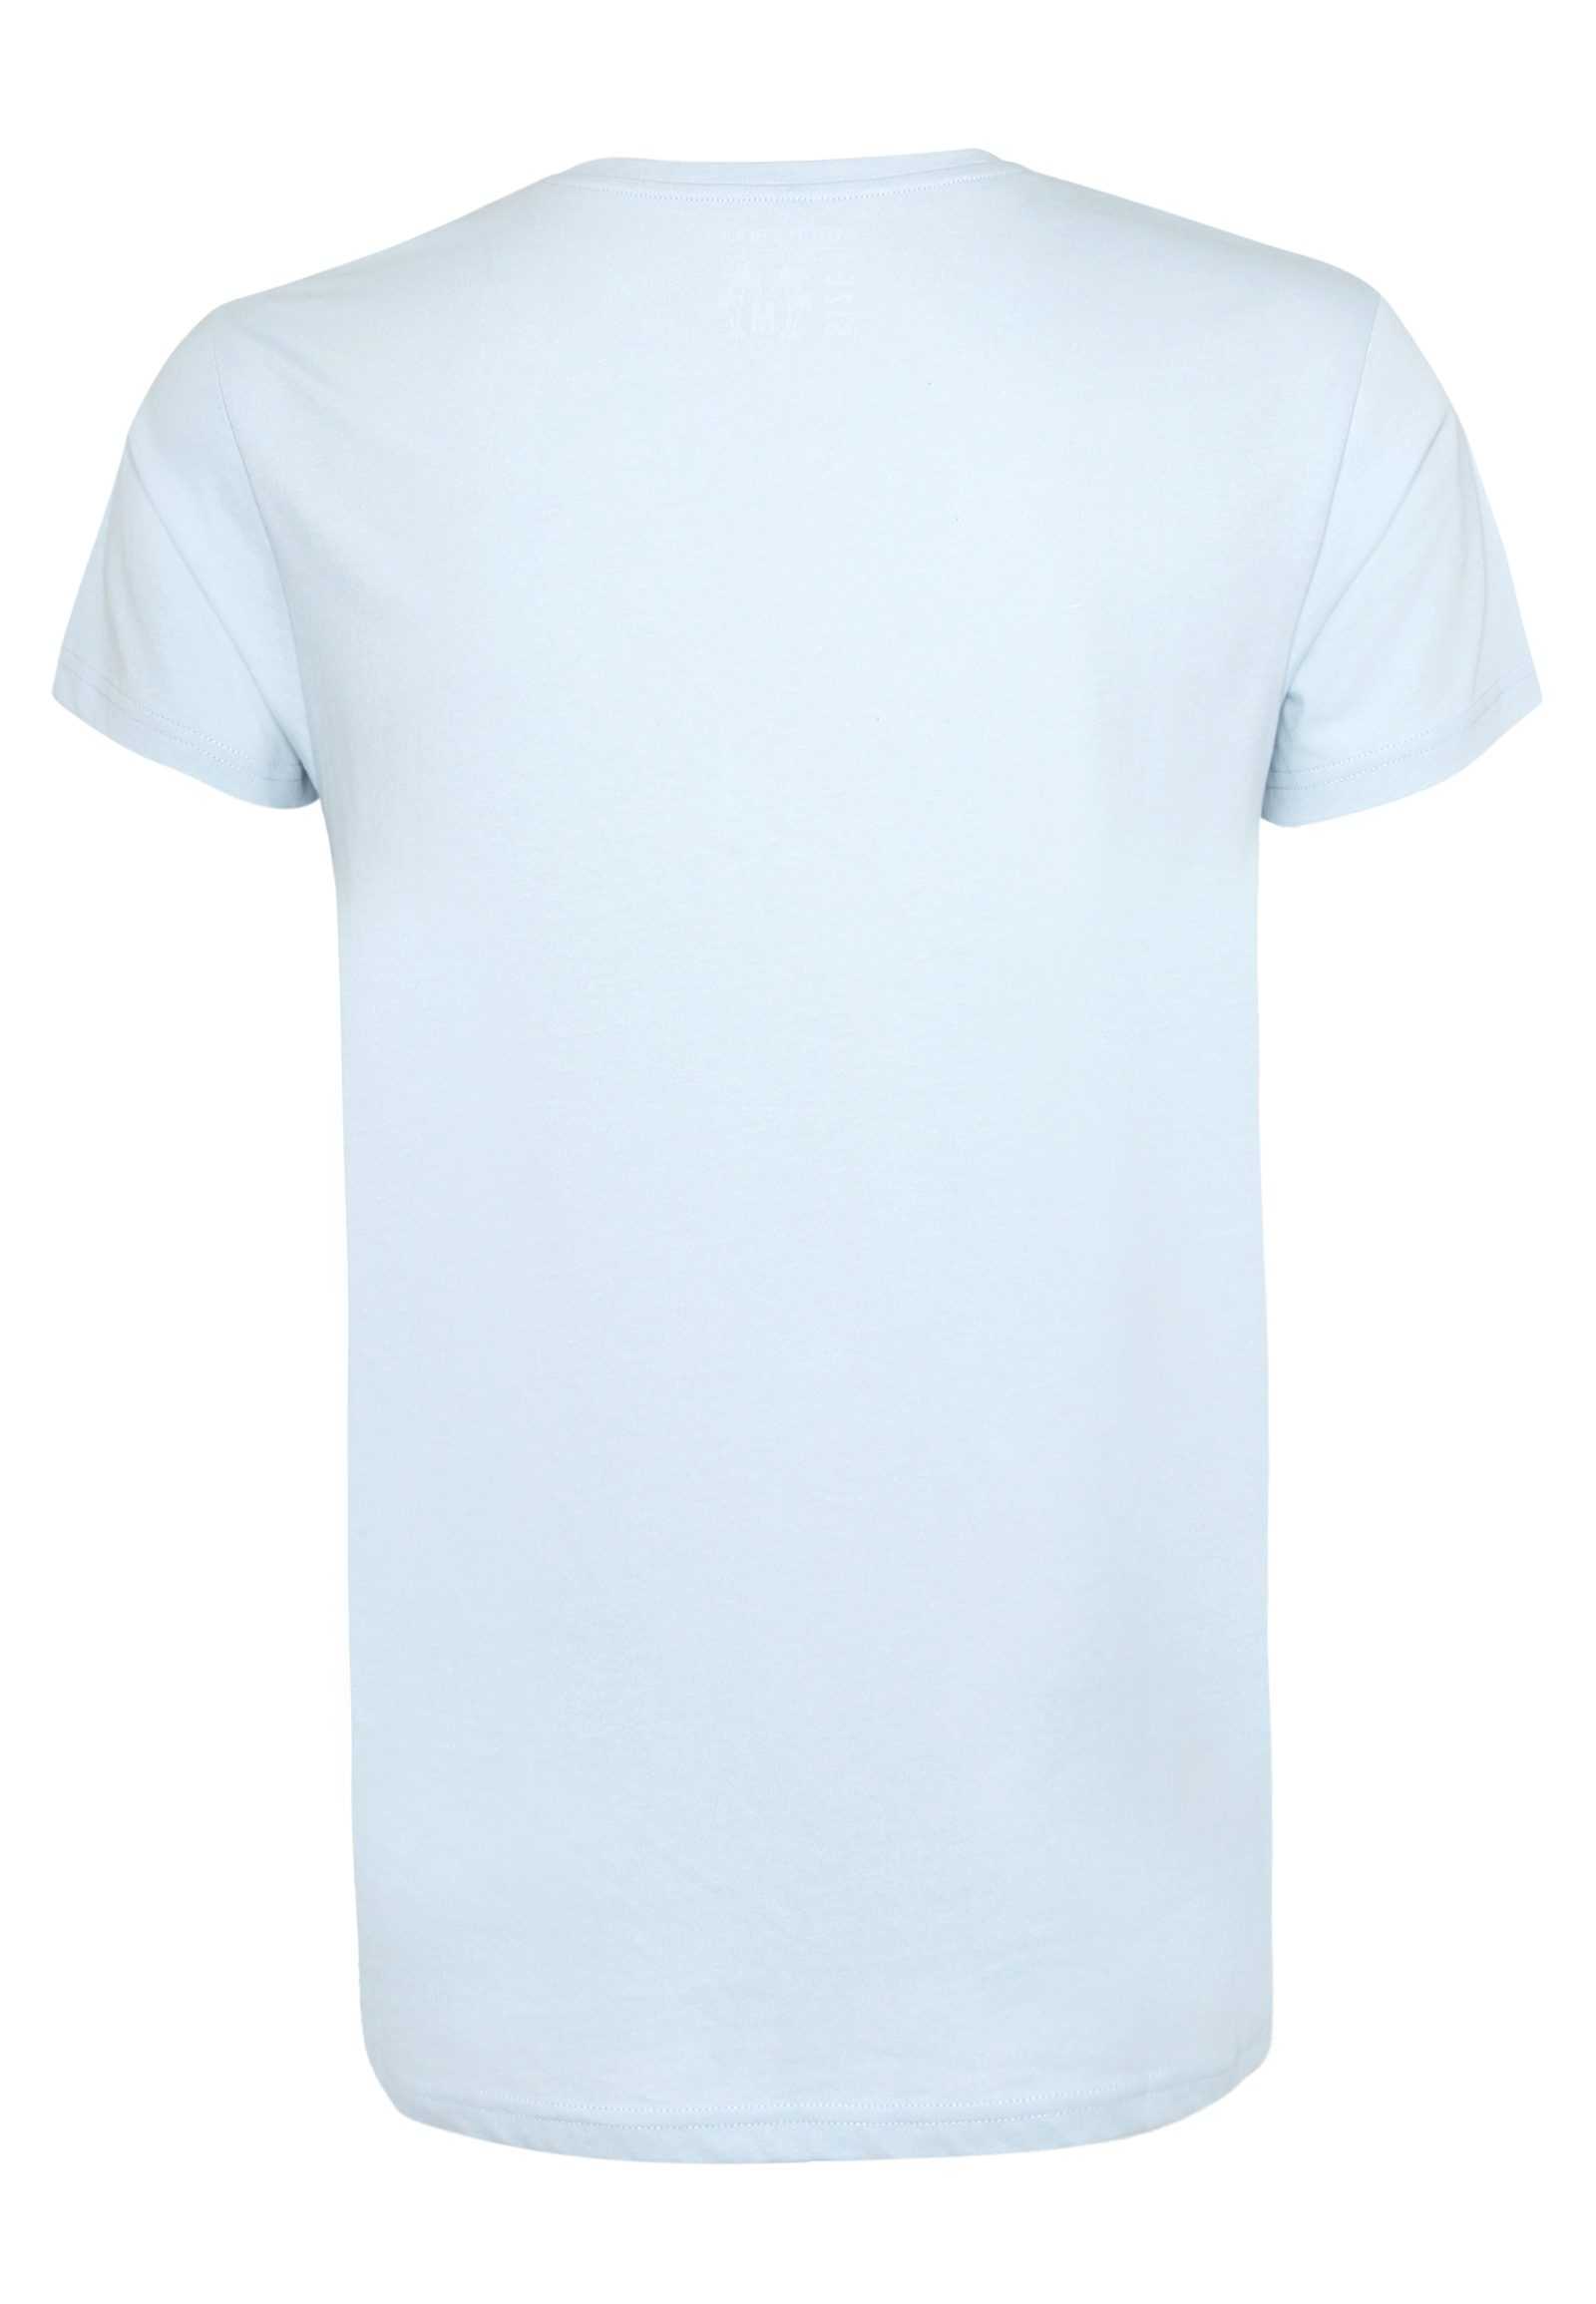 Vorschau: Herren T-Shirt - Miami Nights